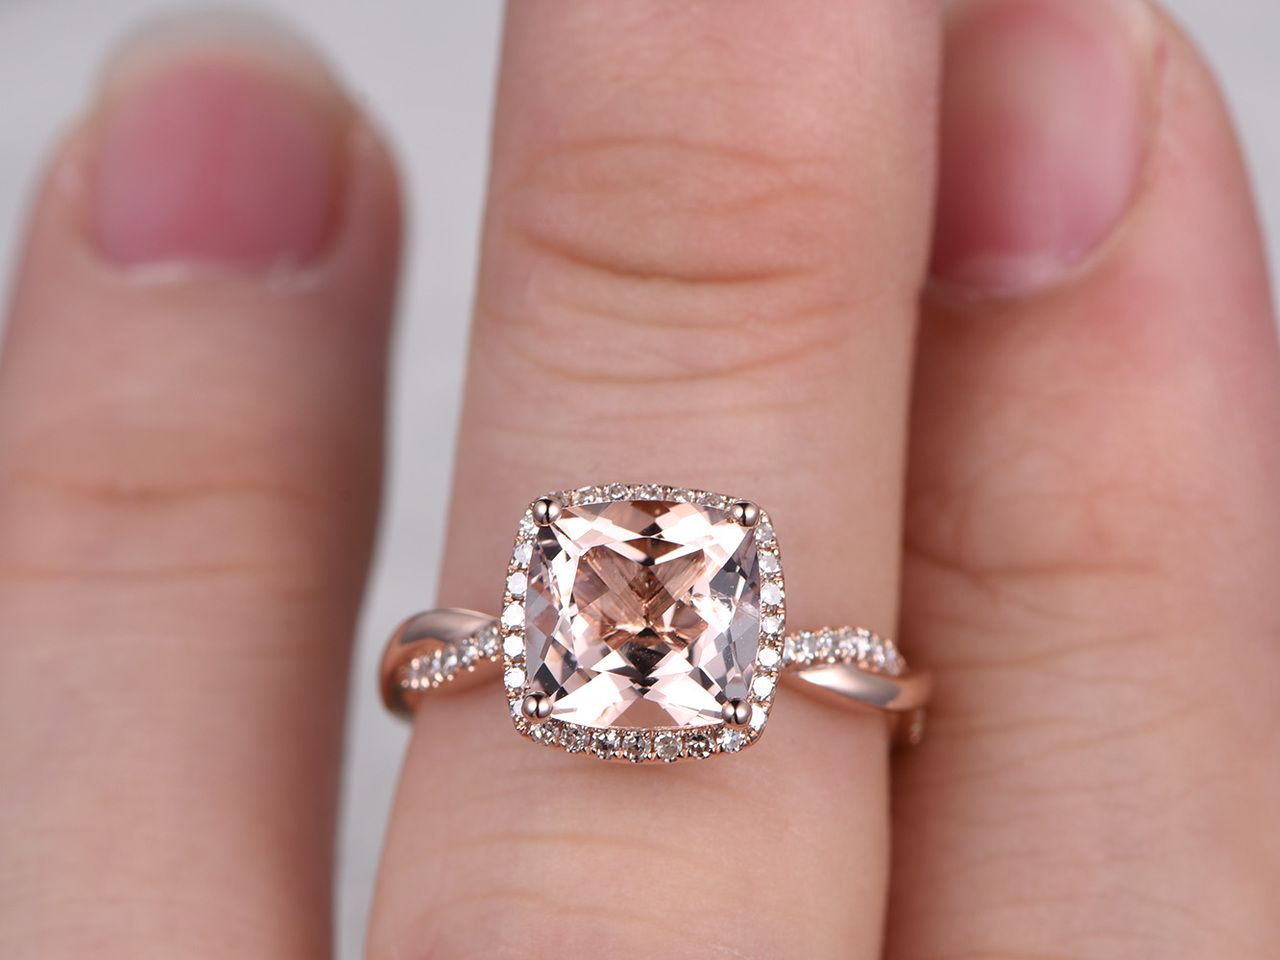 2.4 Carat Cushion Cut Morganite Engagement Ring Diamond Promise Ring ...